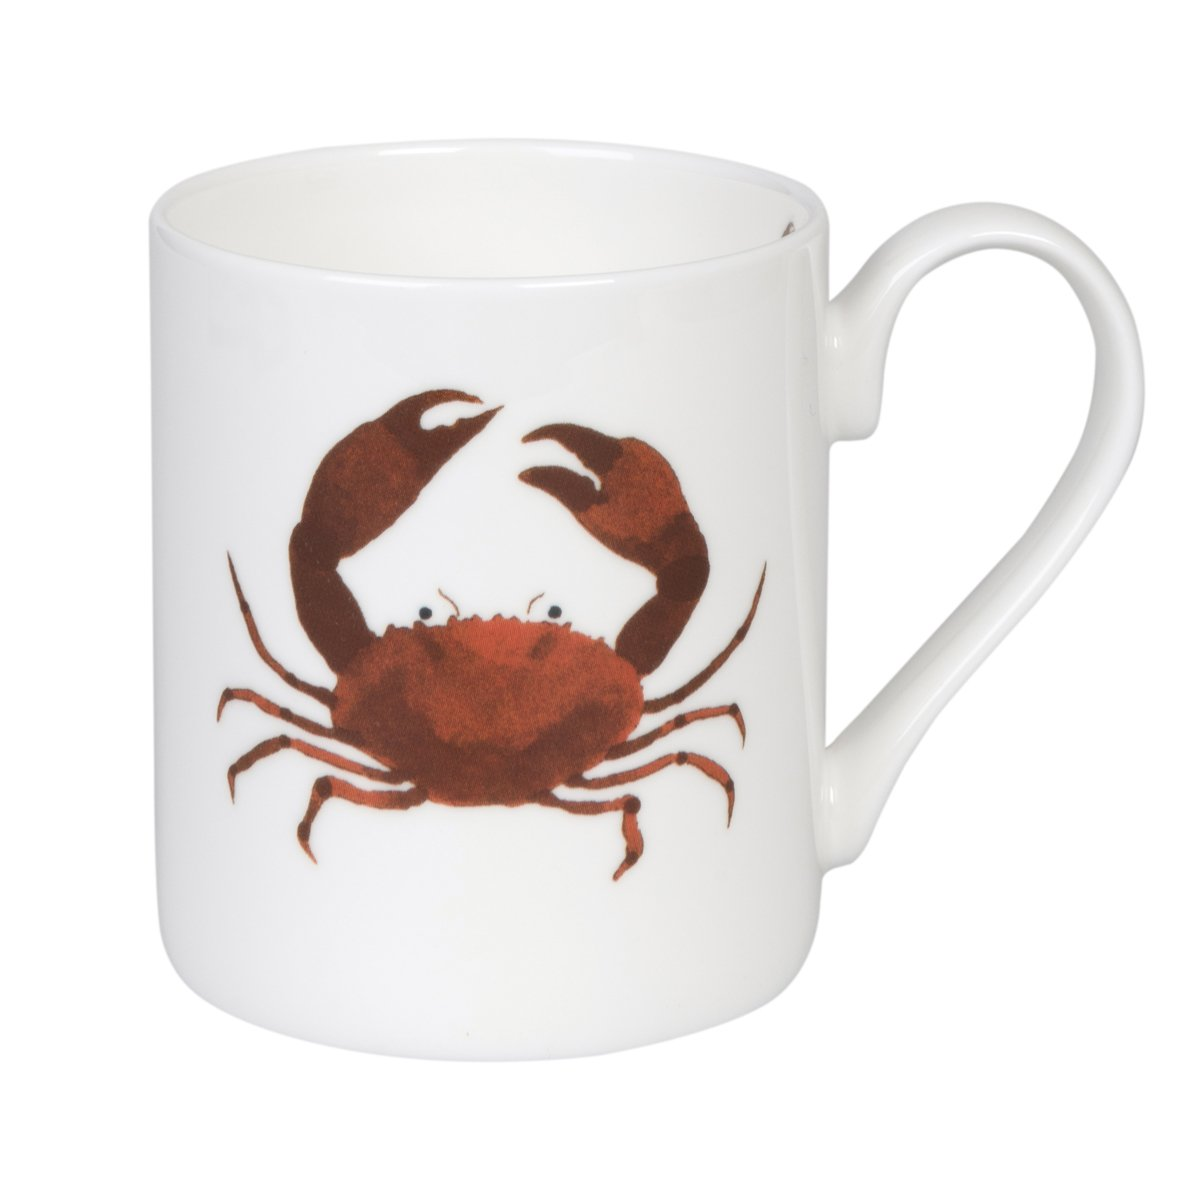 Sophie Allport Fine Bone China Crab Solo Mug